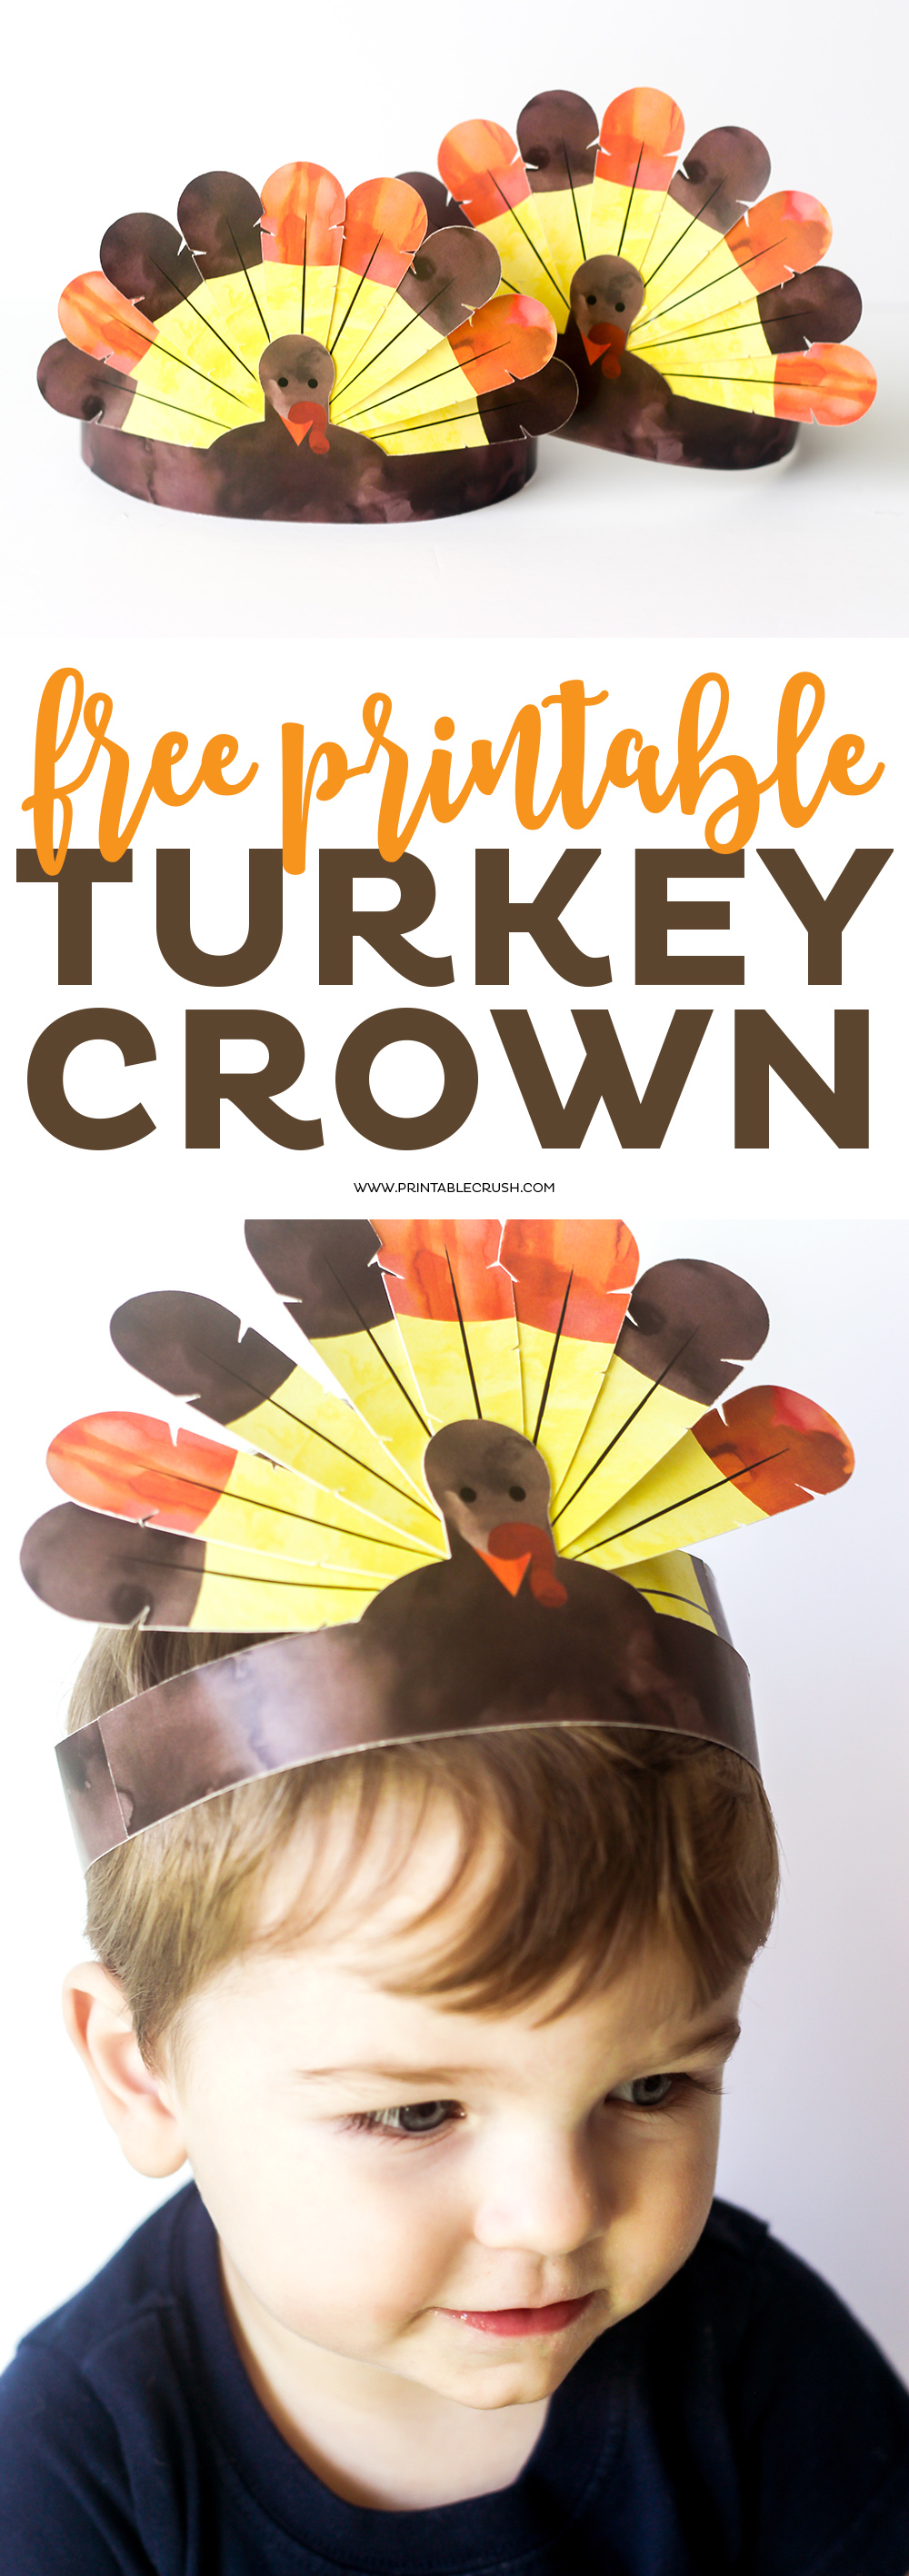 Download these FREE Printable Thanksgiving Turkey Crowns for the kids to enjoy! The kids will love wearing them for Thanksgiving Dinner.